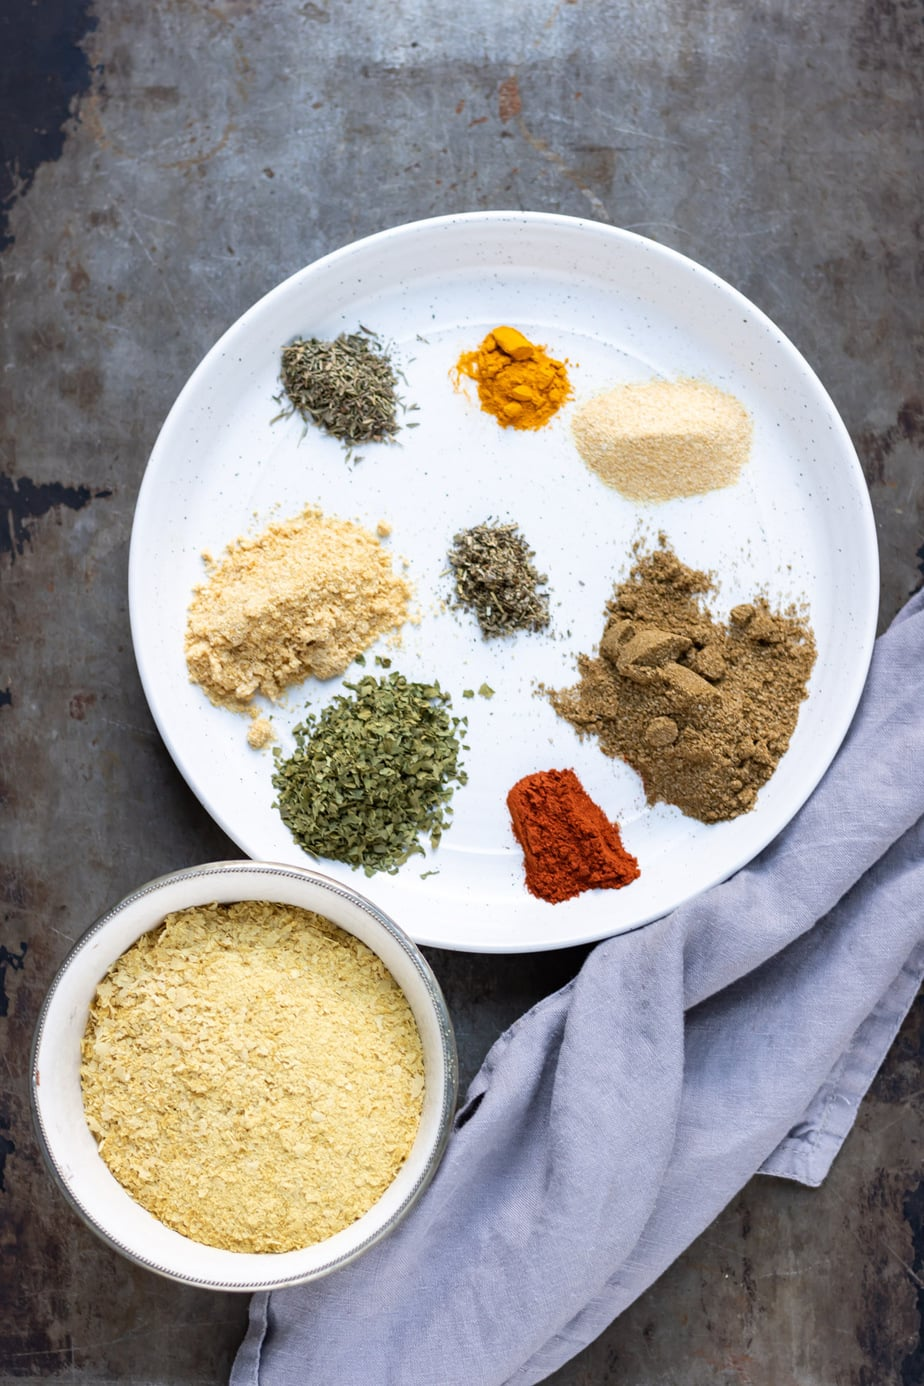 Plate of spices.